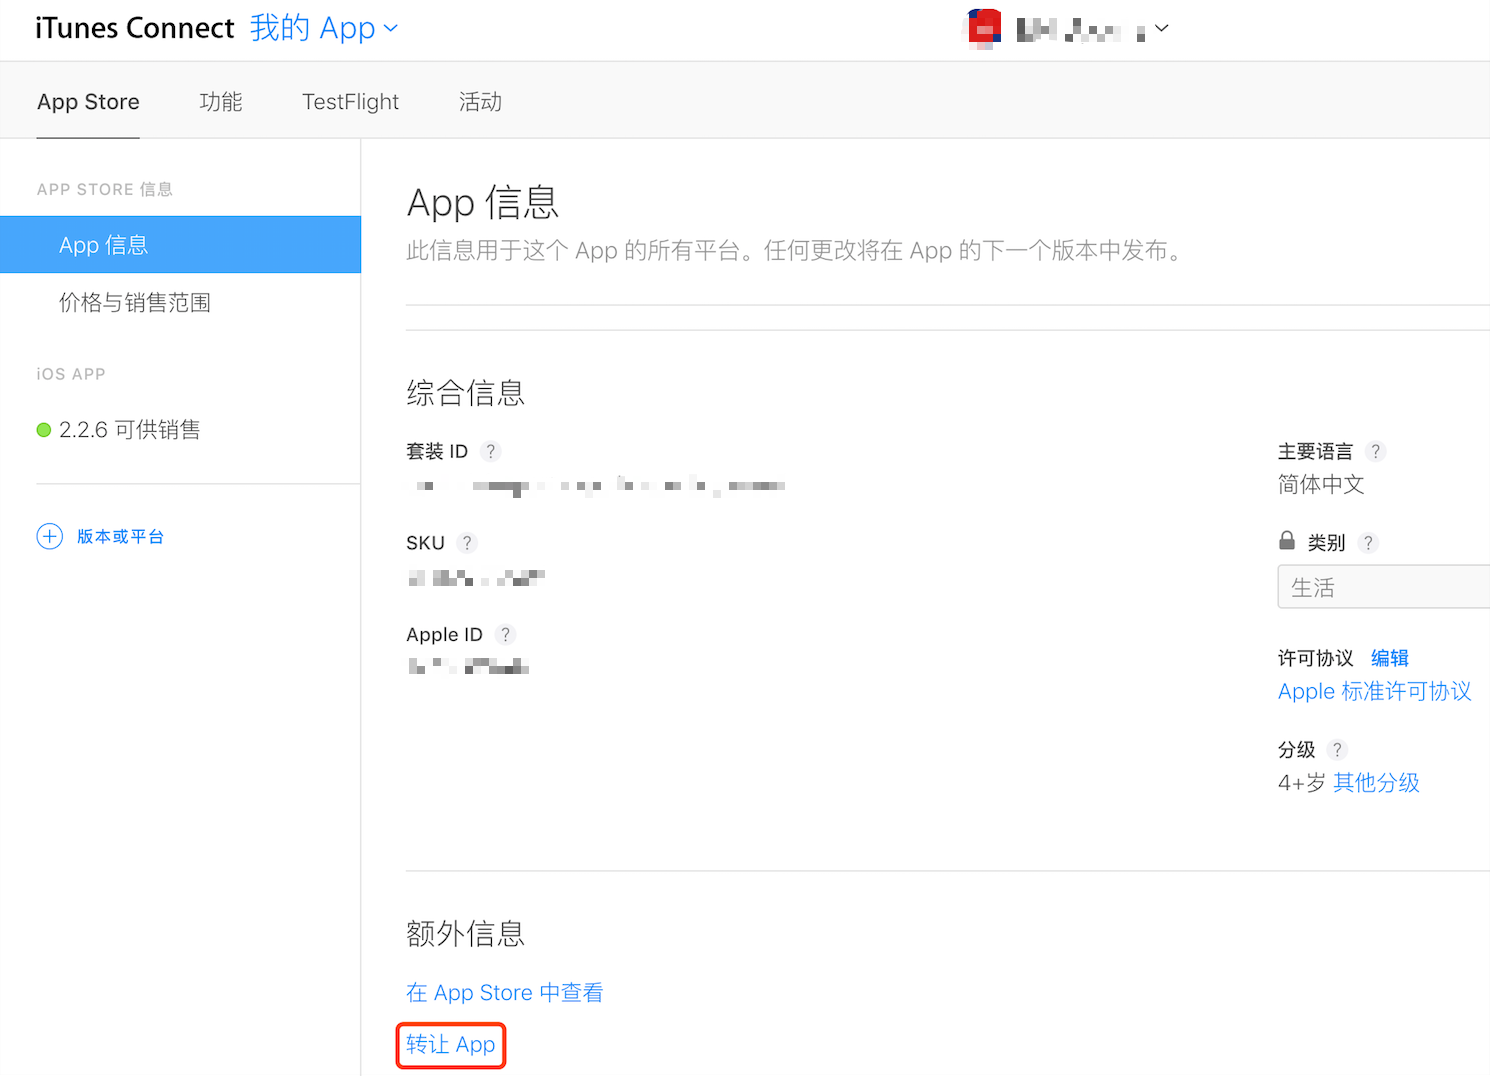 itunes-connect-app-transfer